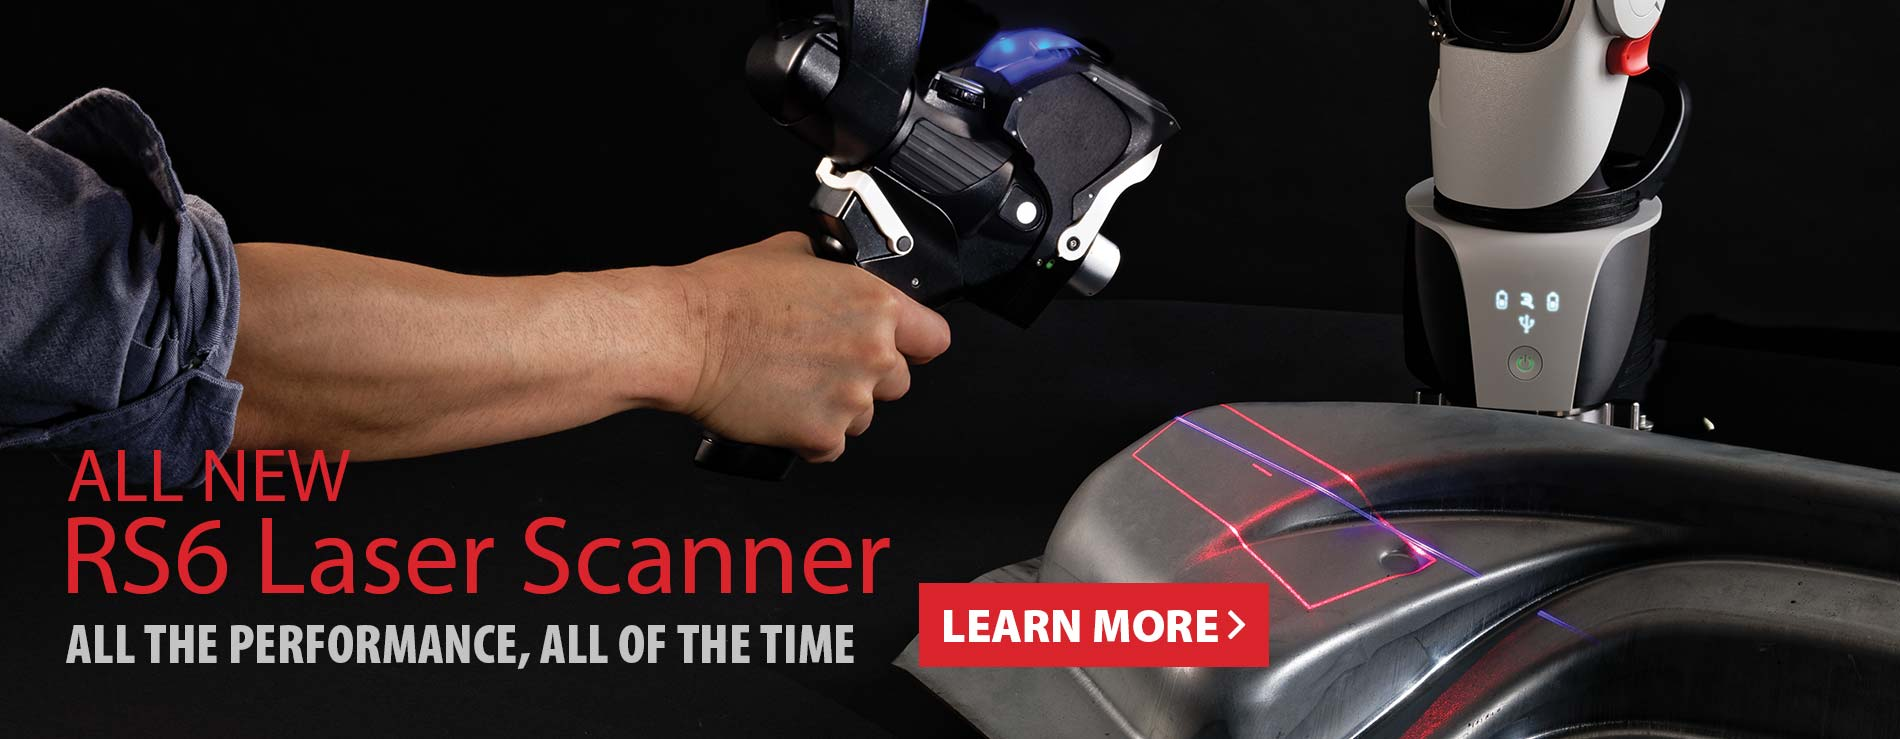 New Hexagon Absolute Arm RS6 Laser Scanner